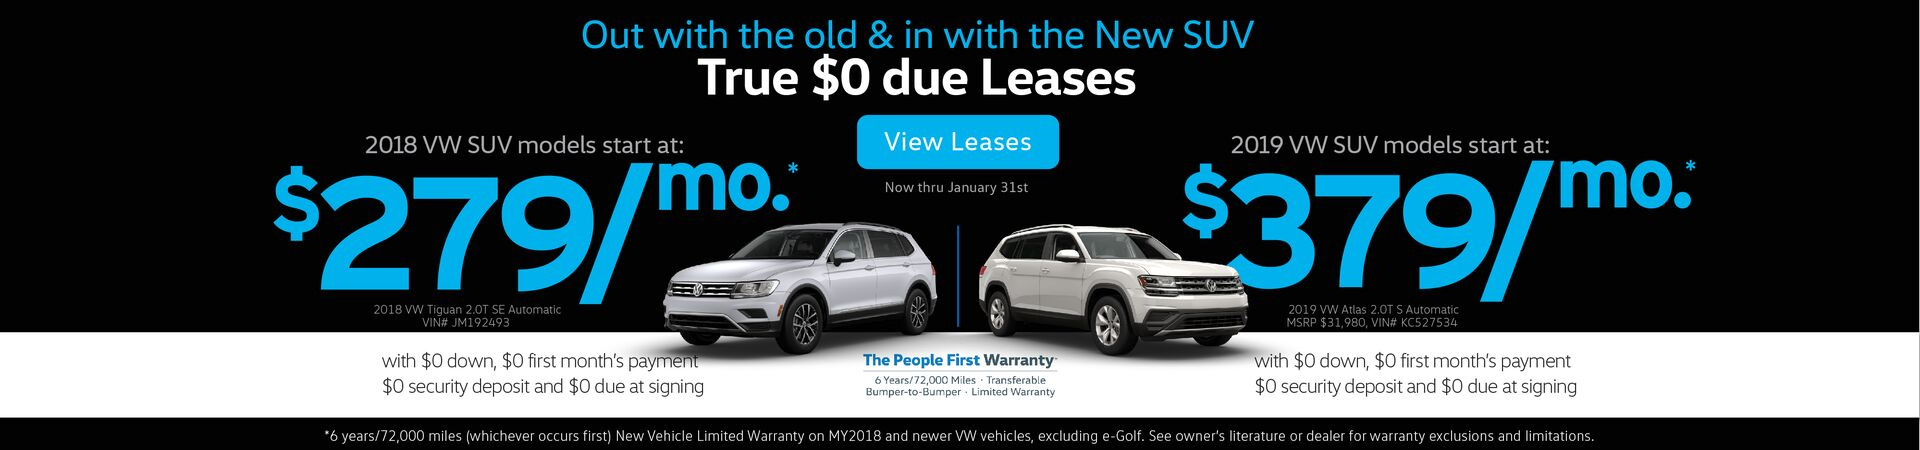 Capo VW New Year Leases on VW SUV models